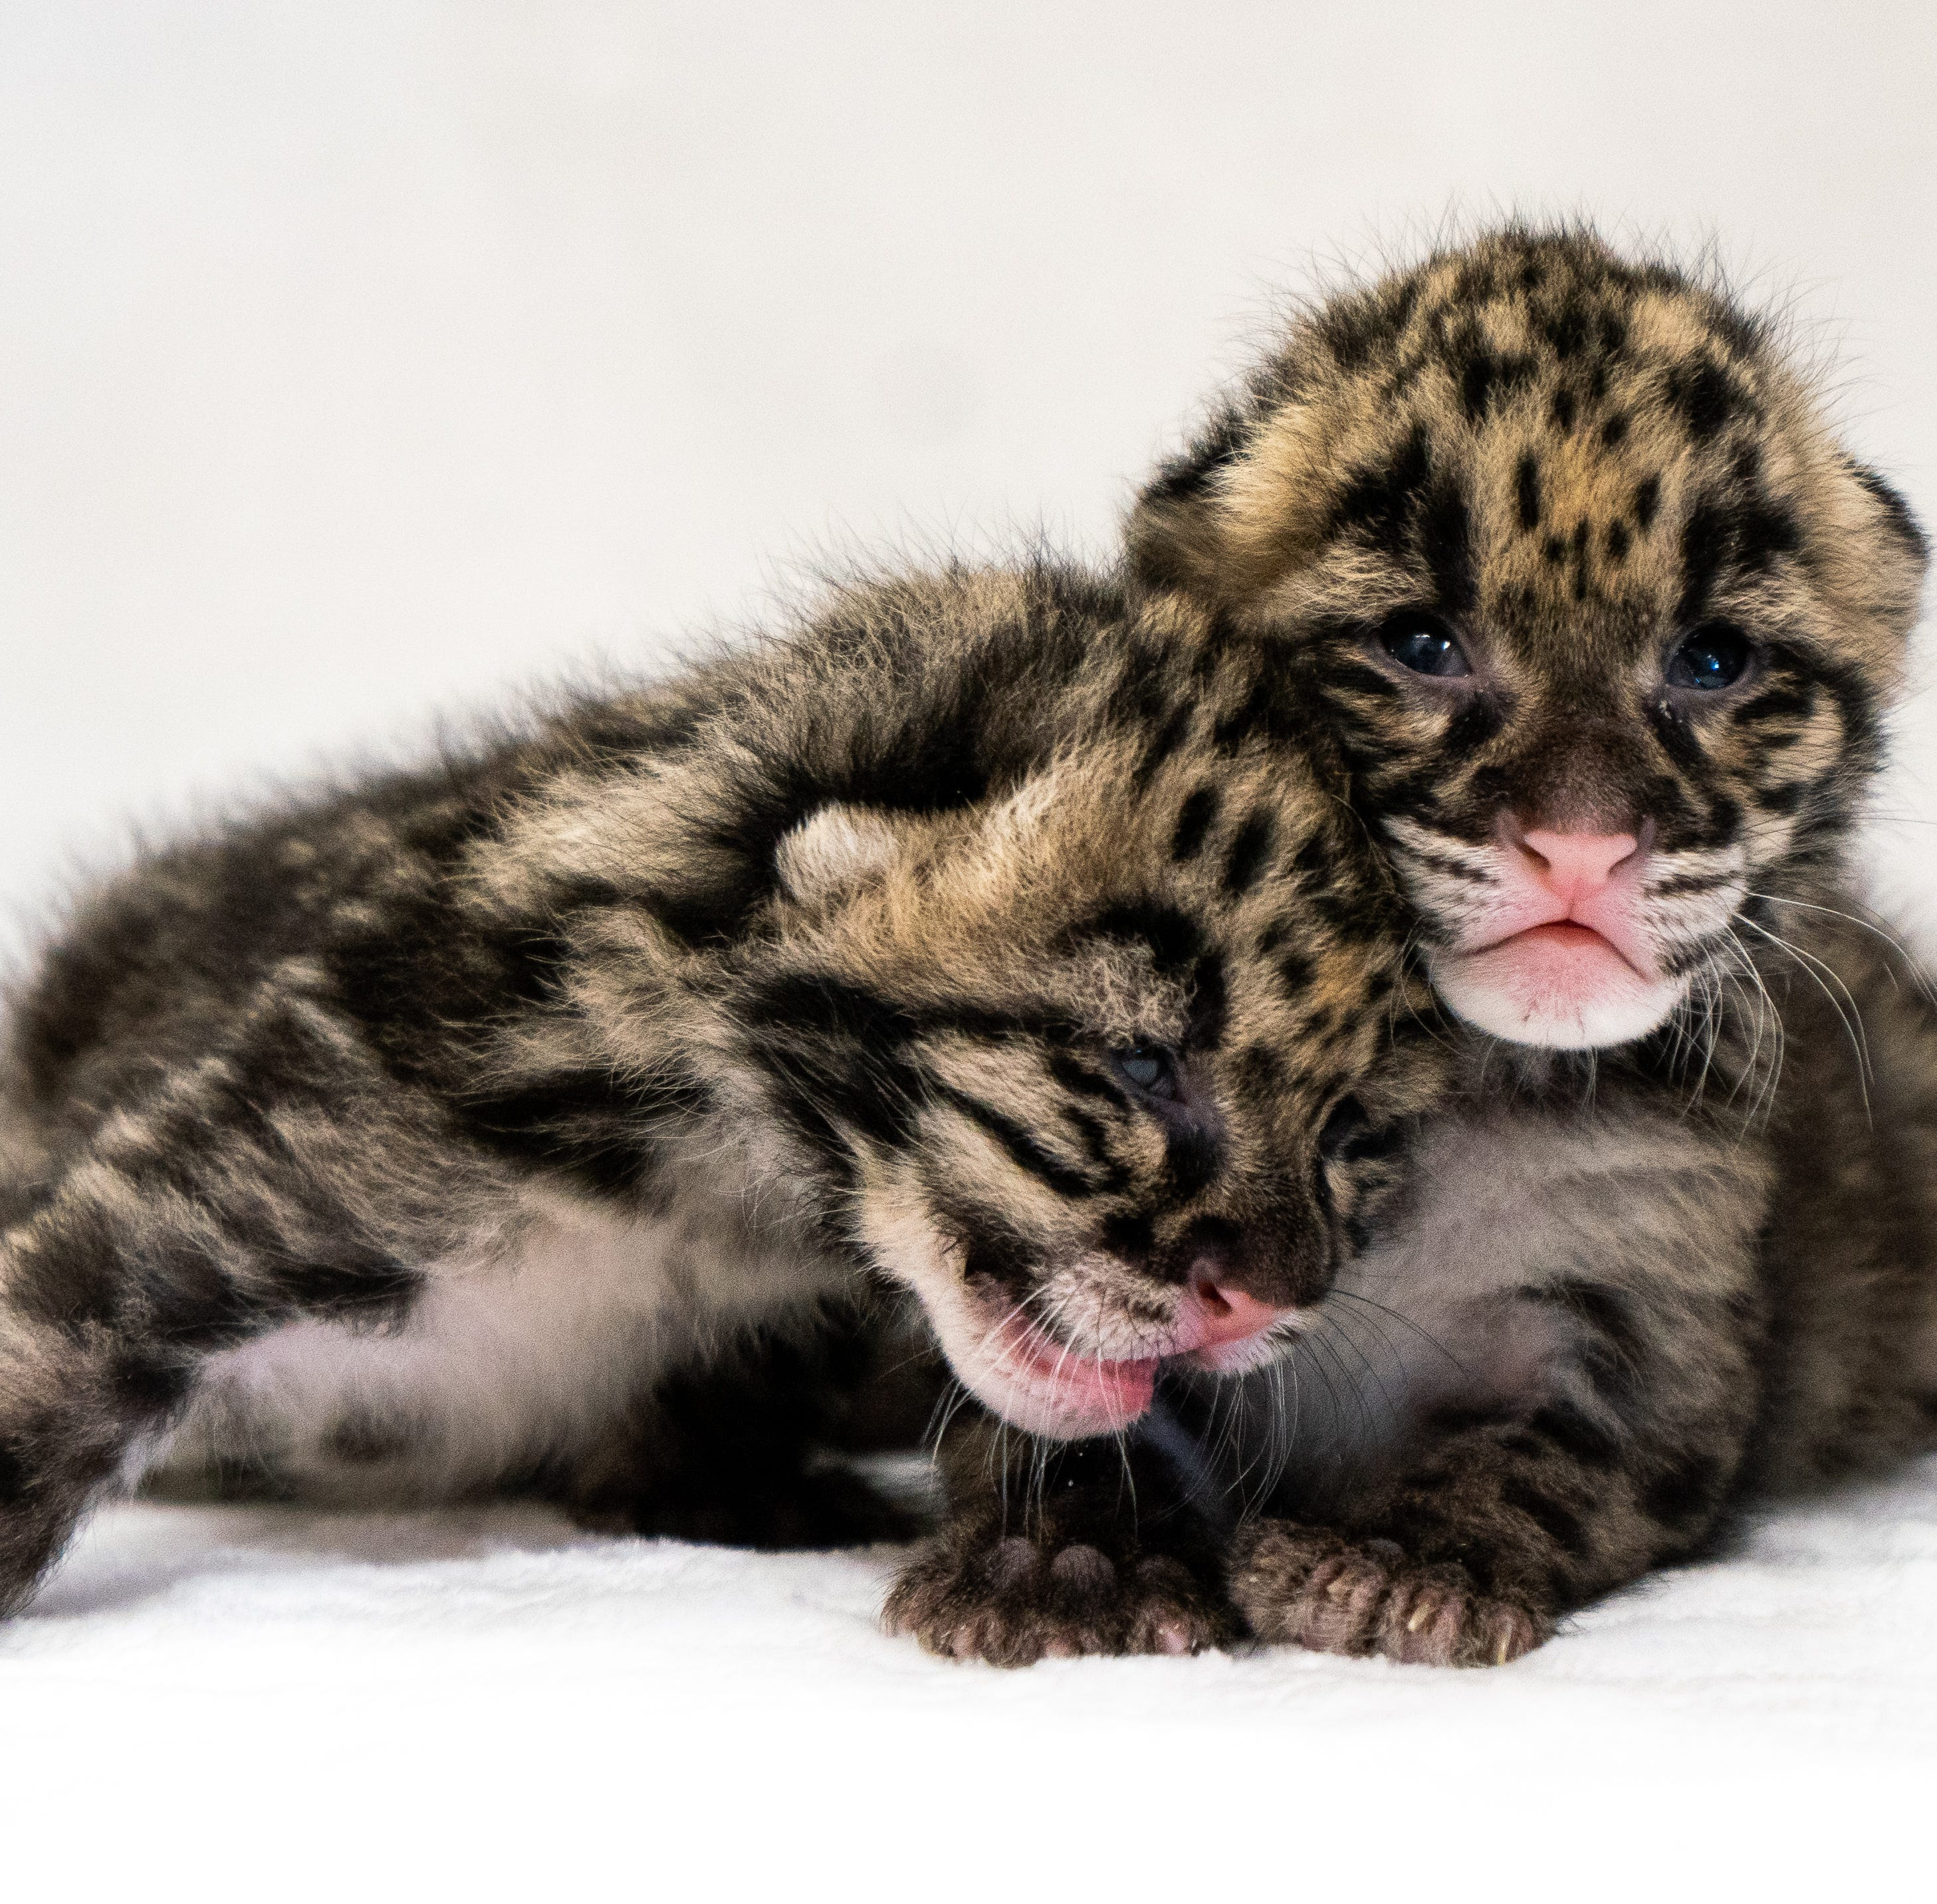 Meet Jean and Janet. They're the newly named clouded leopard kittens born at Naples Zoo